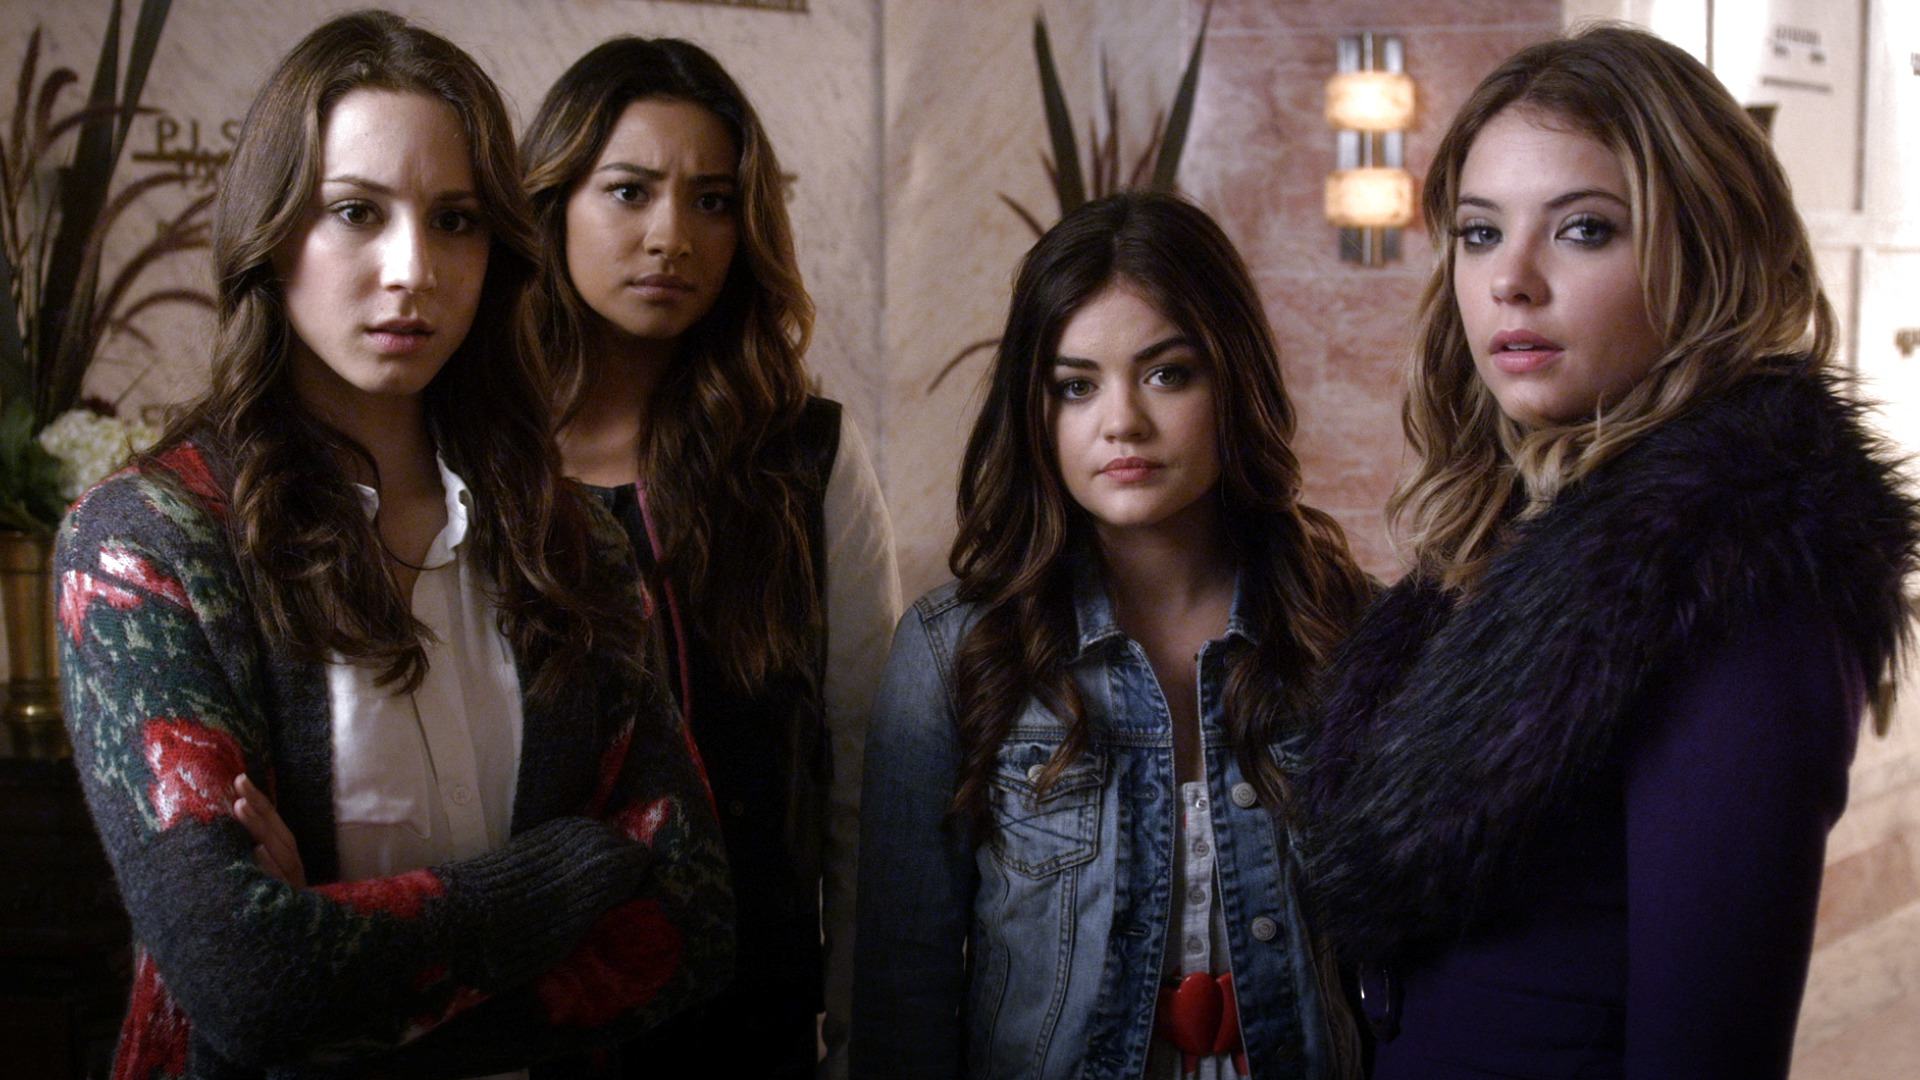 pretty little liars season 4 full episodes free online